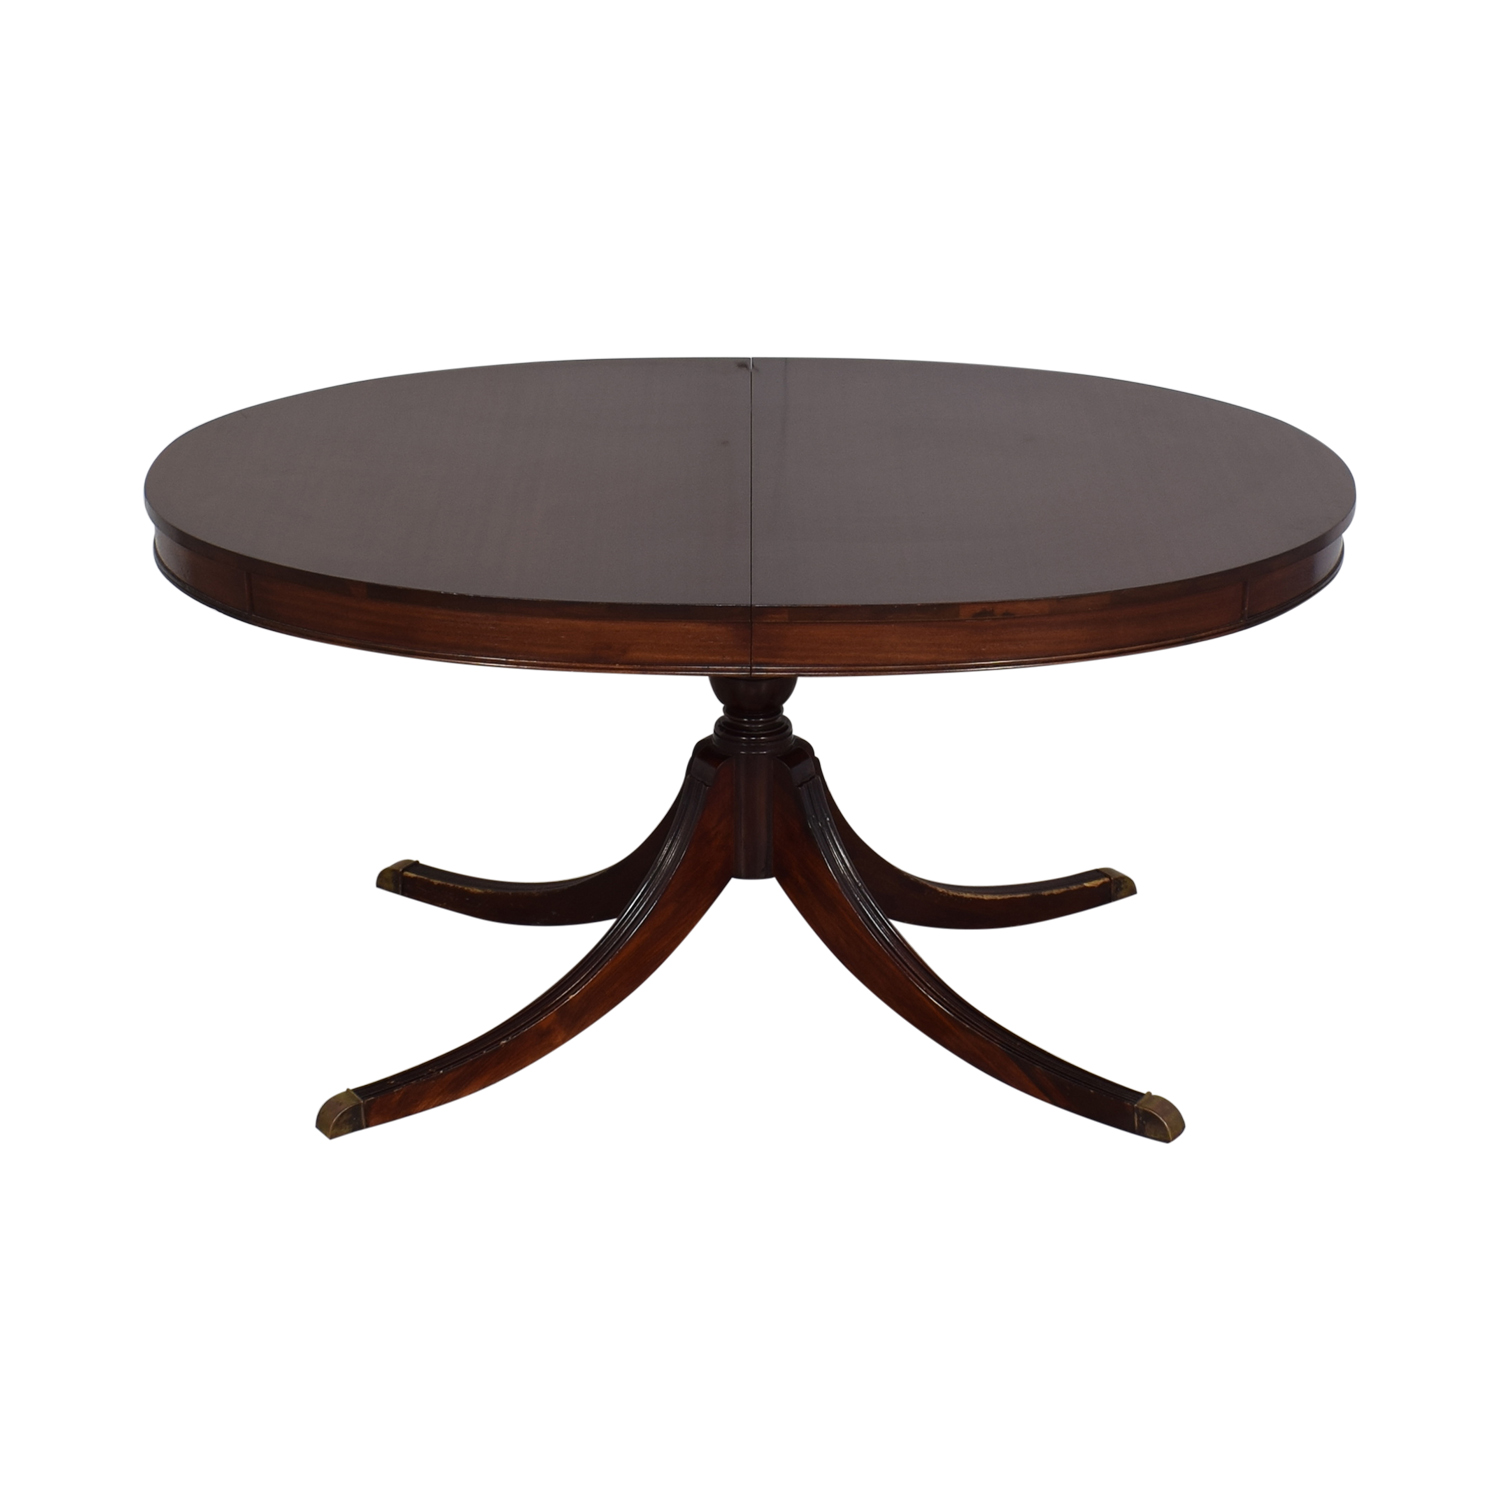 Antique Oval Dining Table dimensions